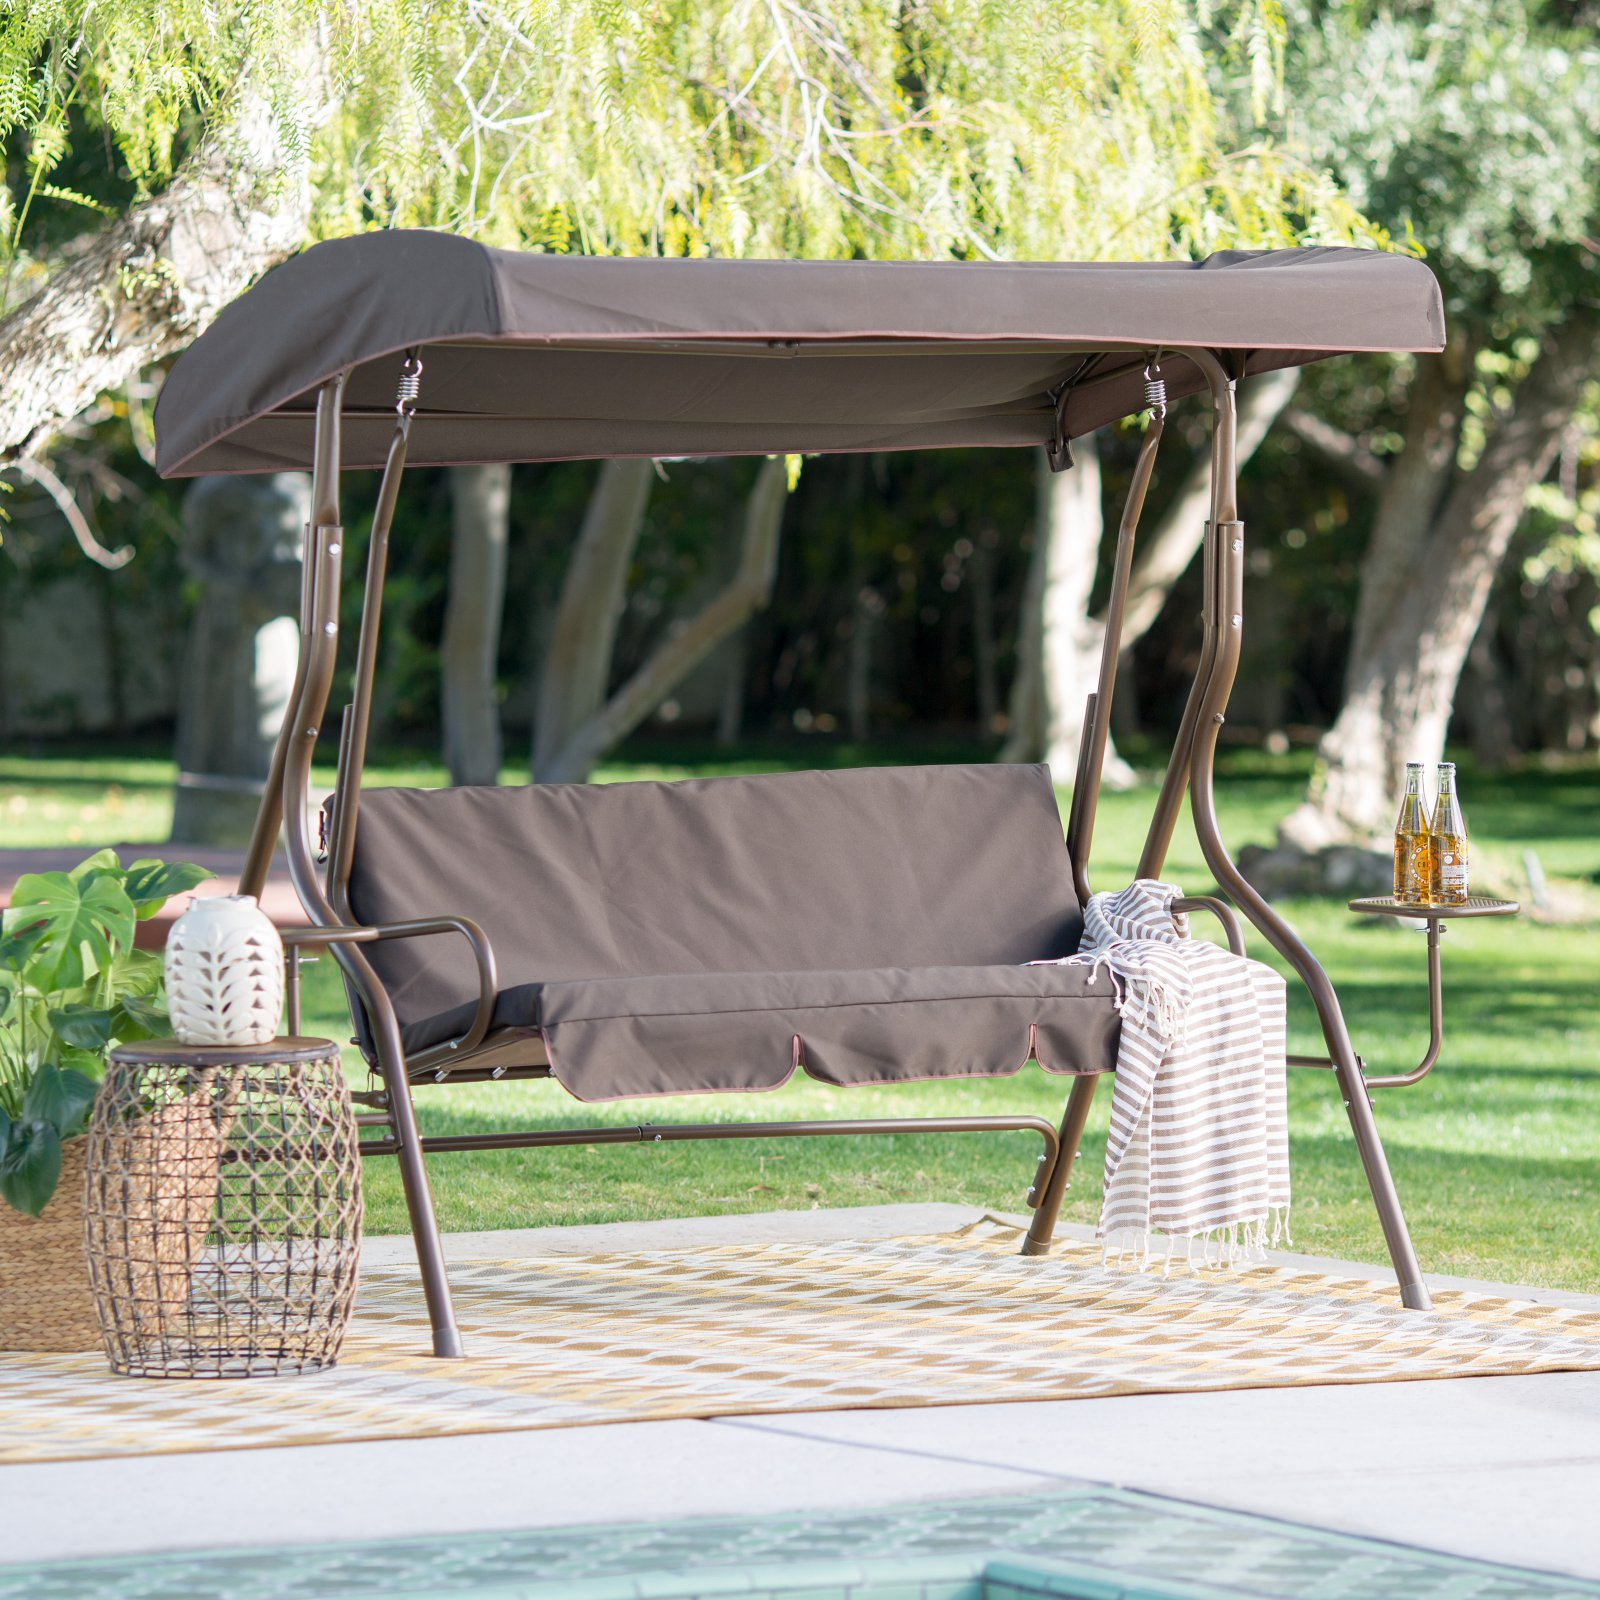 Coral Coast Lakewood 2 Person Adjustable Tilt Canopy Metal Swing With Side Tables – Walmart Intended For 2 Person Adjustable Tilt Canopy Patio Loveseat Porch Swings (View 9 of 25)